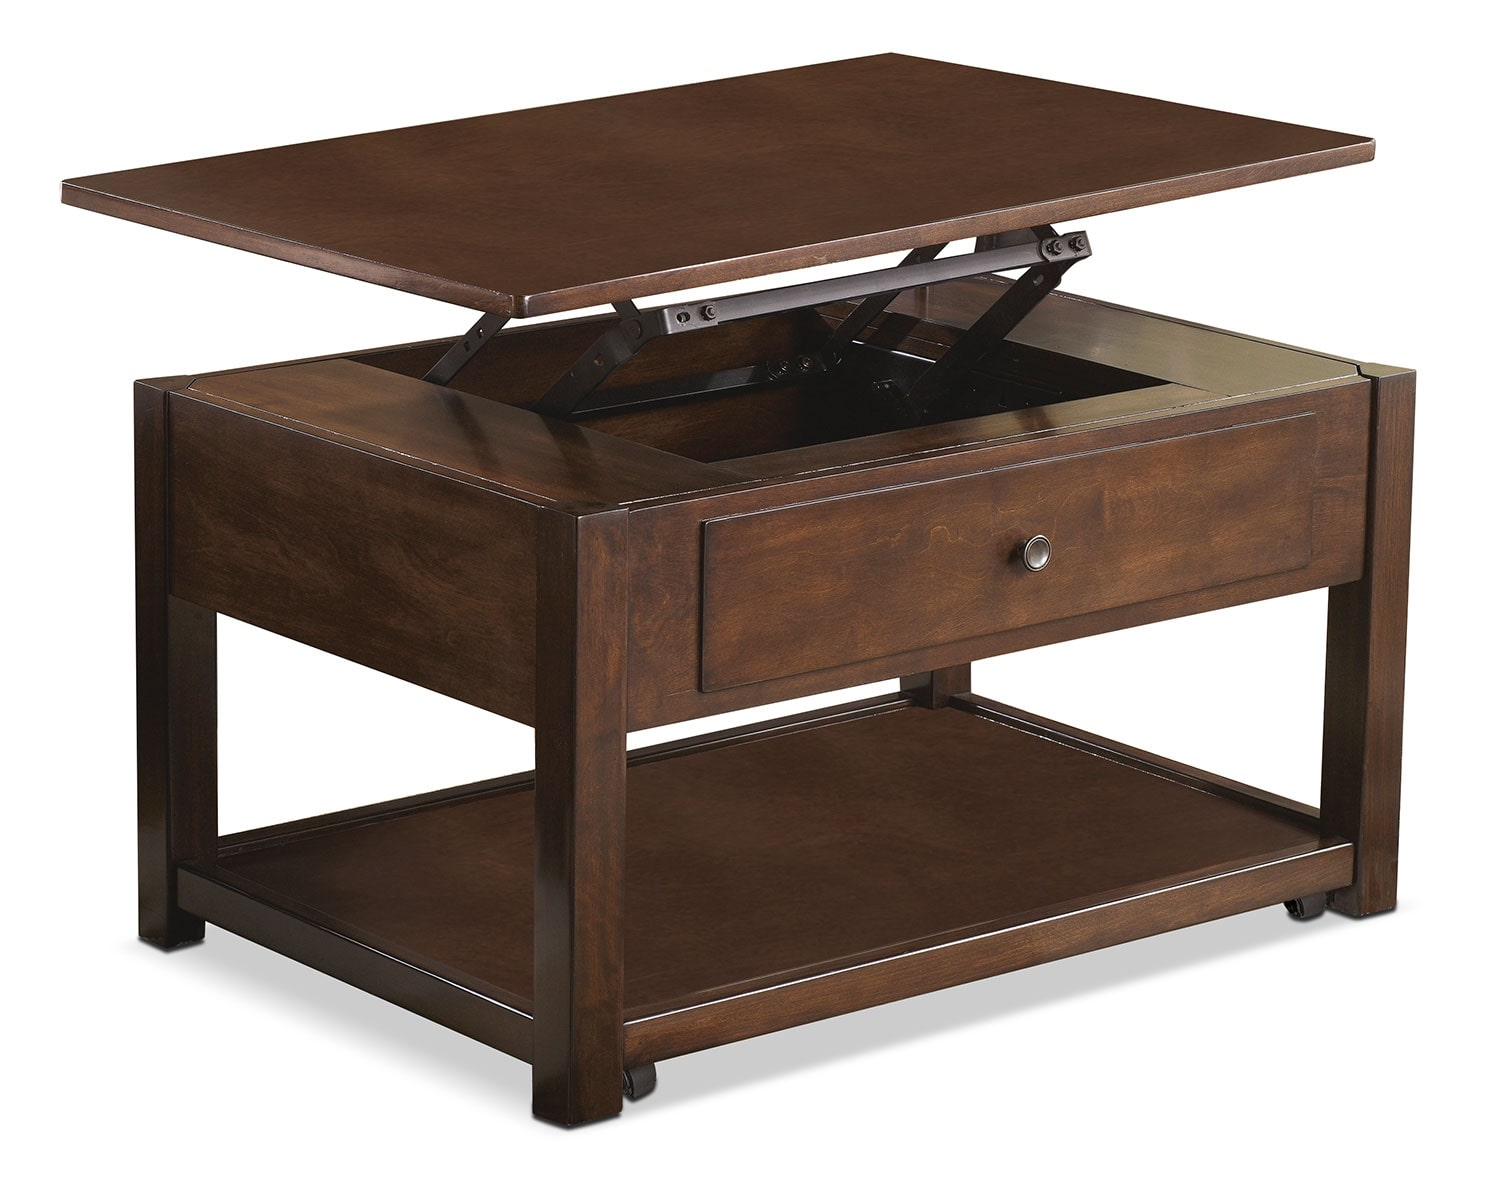 Marion Coffee Table With Lifttop And Casters  The Brick. Shallow Drawer Cabinet. Metal Trunk Coffee Table. Table Tennis Rackets. Standing Desk With Storage. Bar Stools And Table Set. Really Cheap Desks. Ping Pong Pool Table. Break Room Table